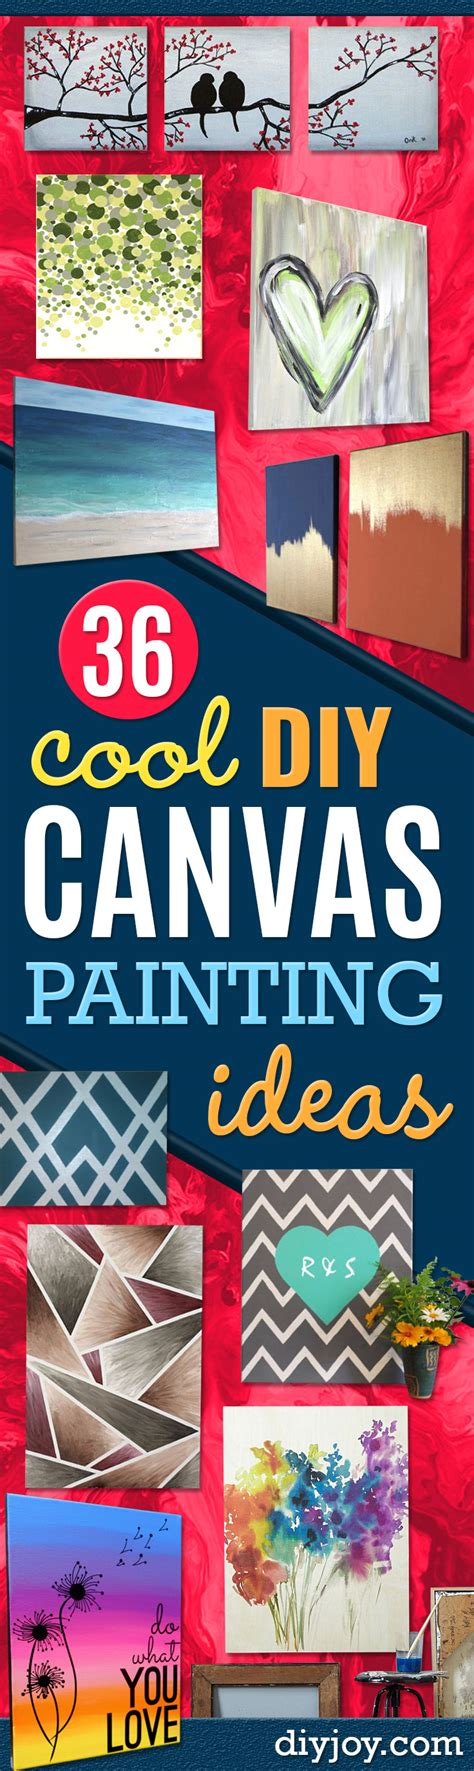 cool painting ideas on canvas 36 diy canvas painting ideas page 2 of 8 diy